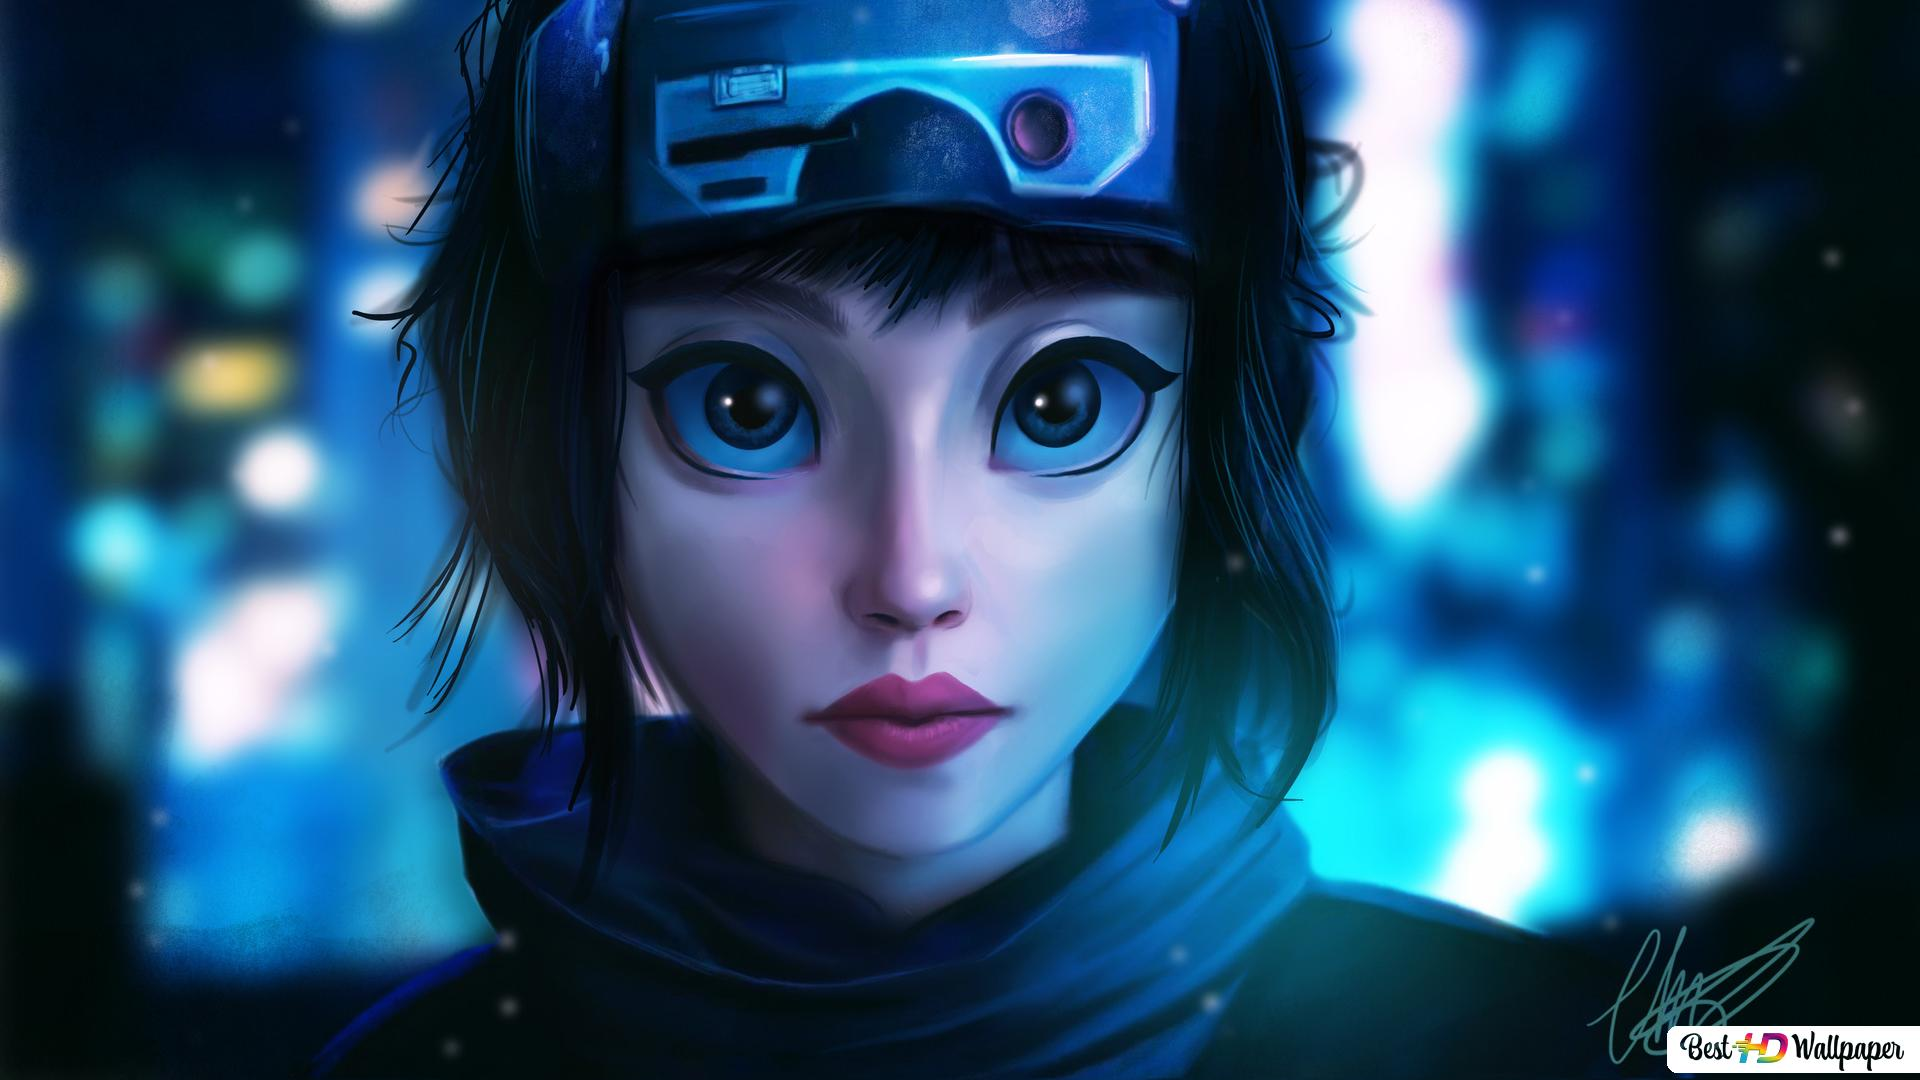 Ghost In The Shell Anime Unduhan Wallpaper Hd